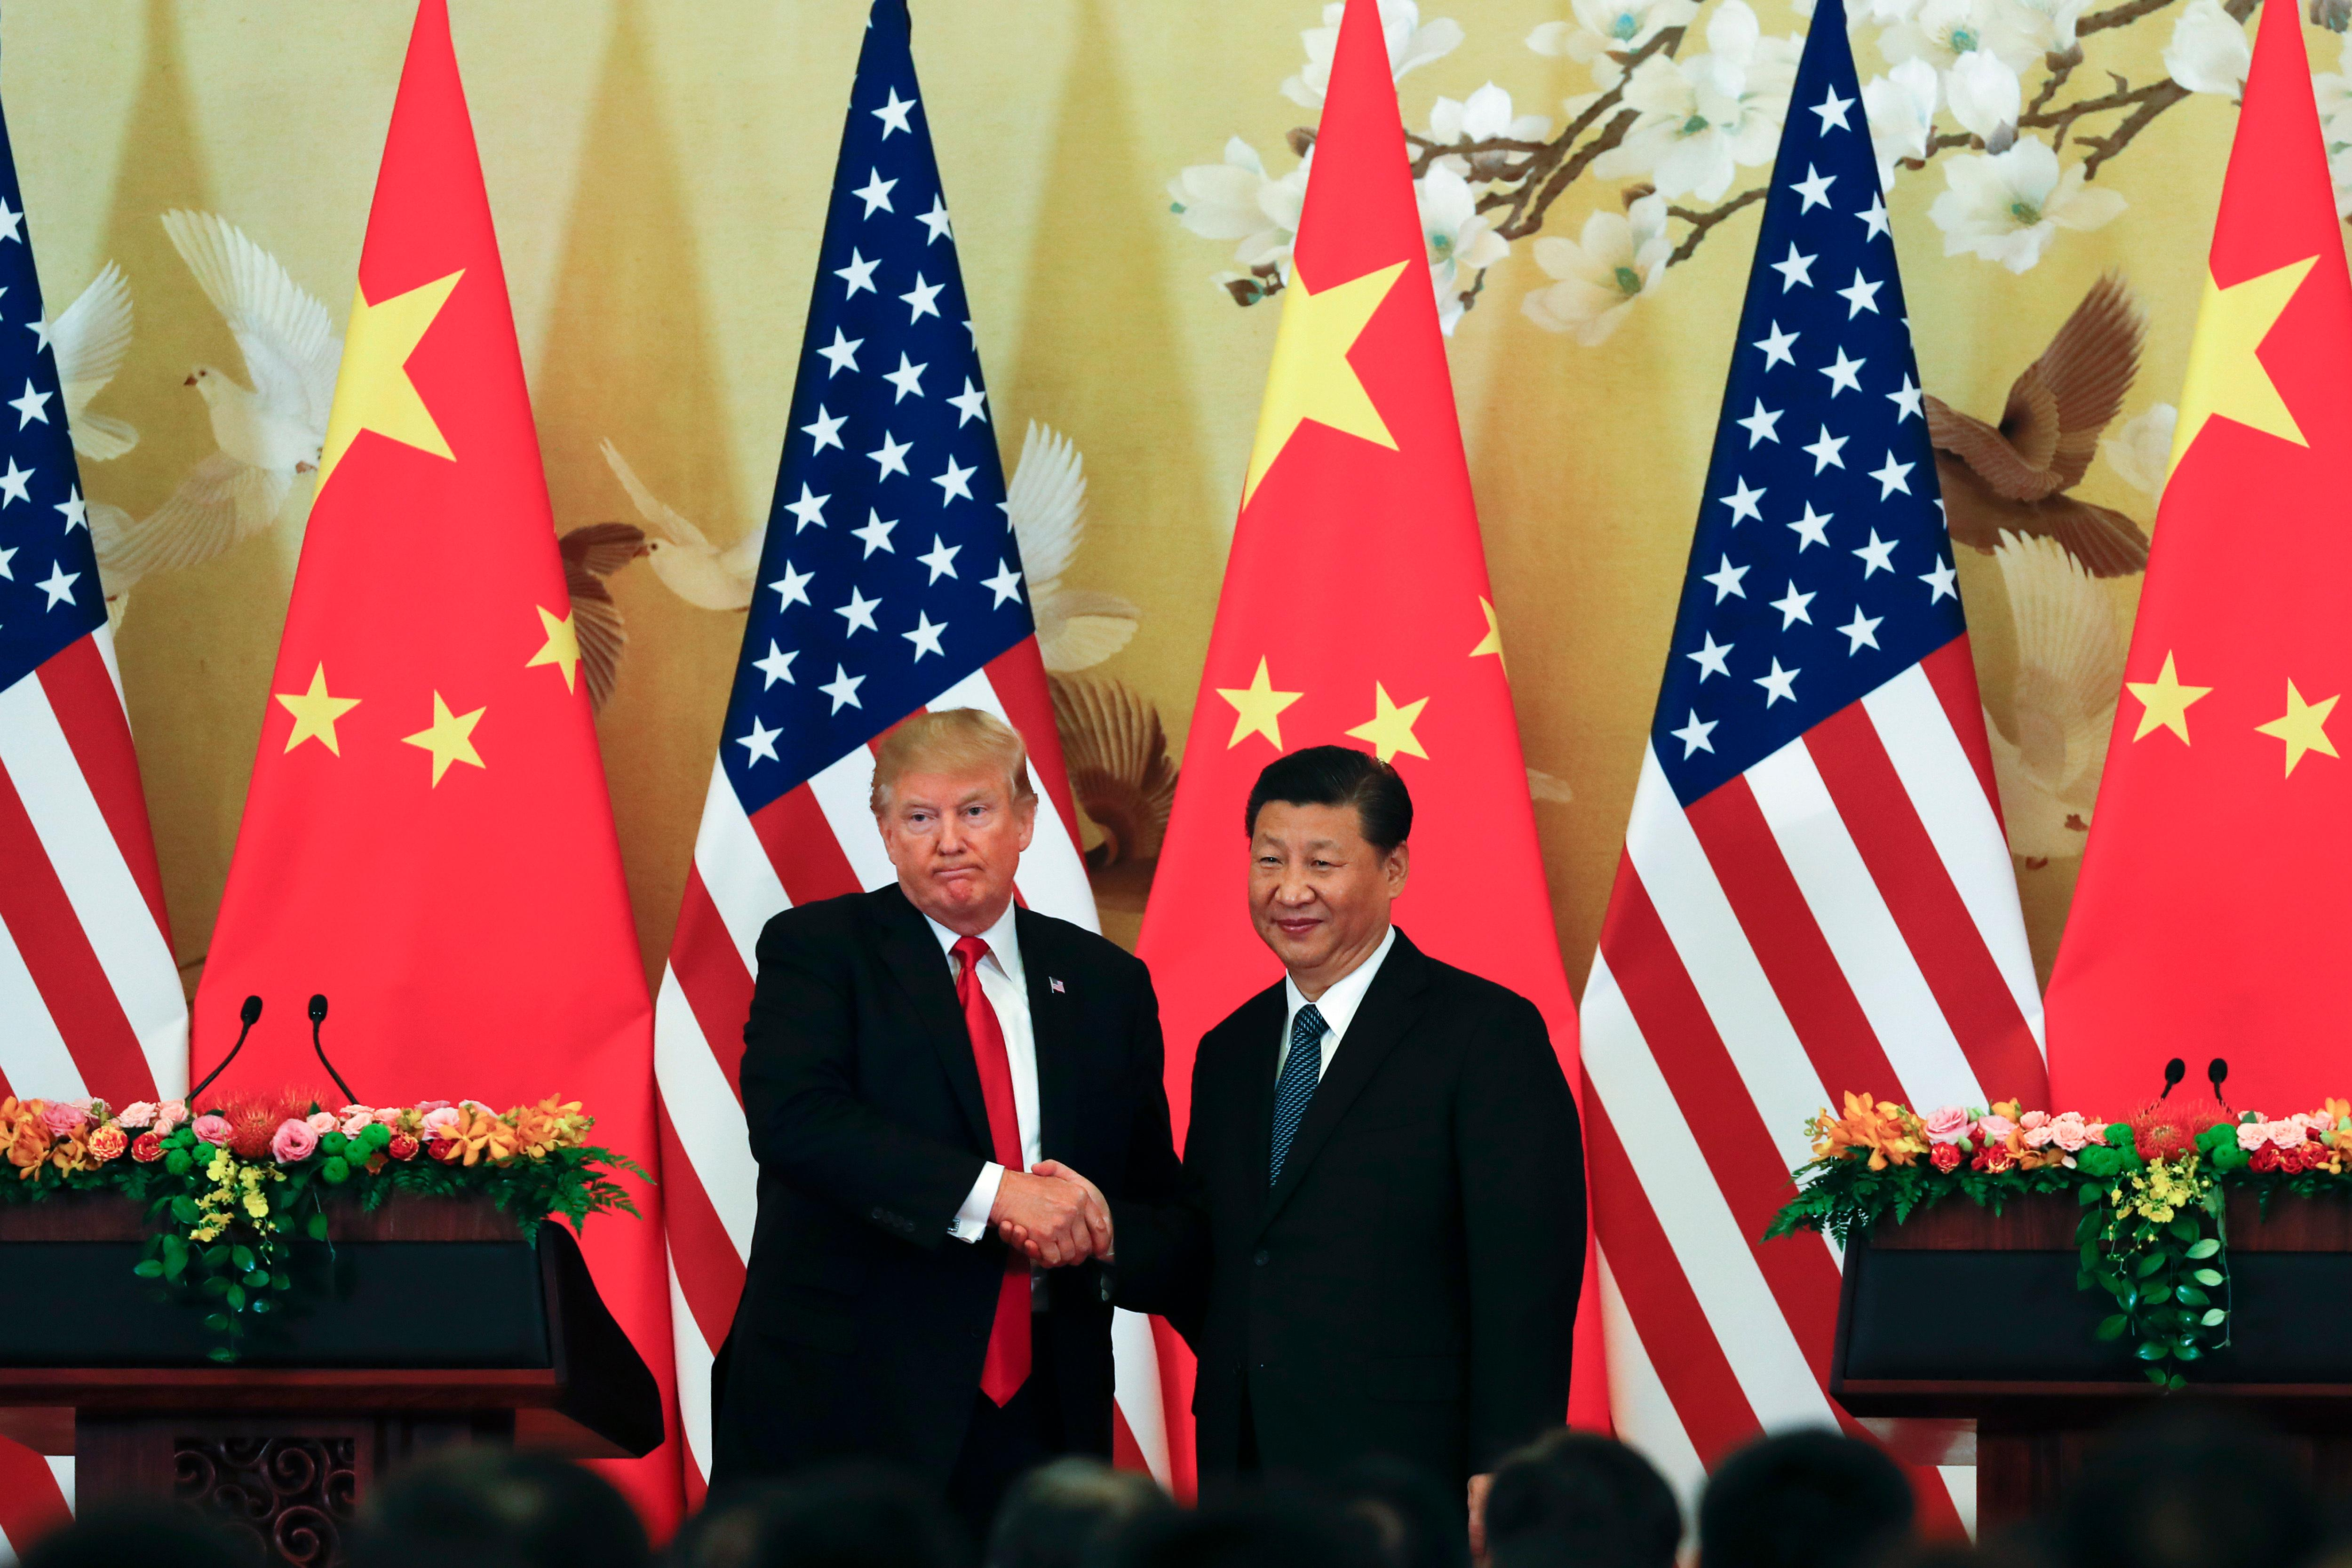 U.S. President Donald Trump, left, poses with Chinese President Xi Jinping for a photo after a joint press conference at the Great Hall of the People in Beijing, Thursday, Nov. 9, 2017. Trump is on a five-country trip through Asia traveling to Japan, South Korea, China, Vietnam and the Philippines. (AP Photo/Andy Wong)